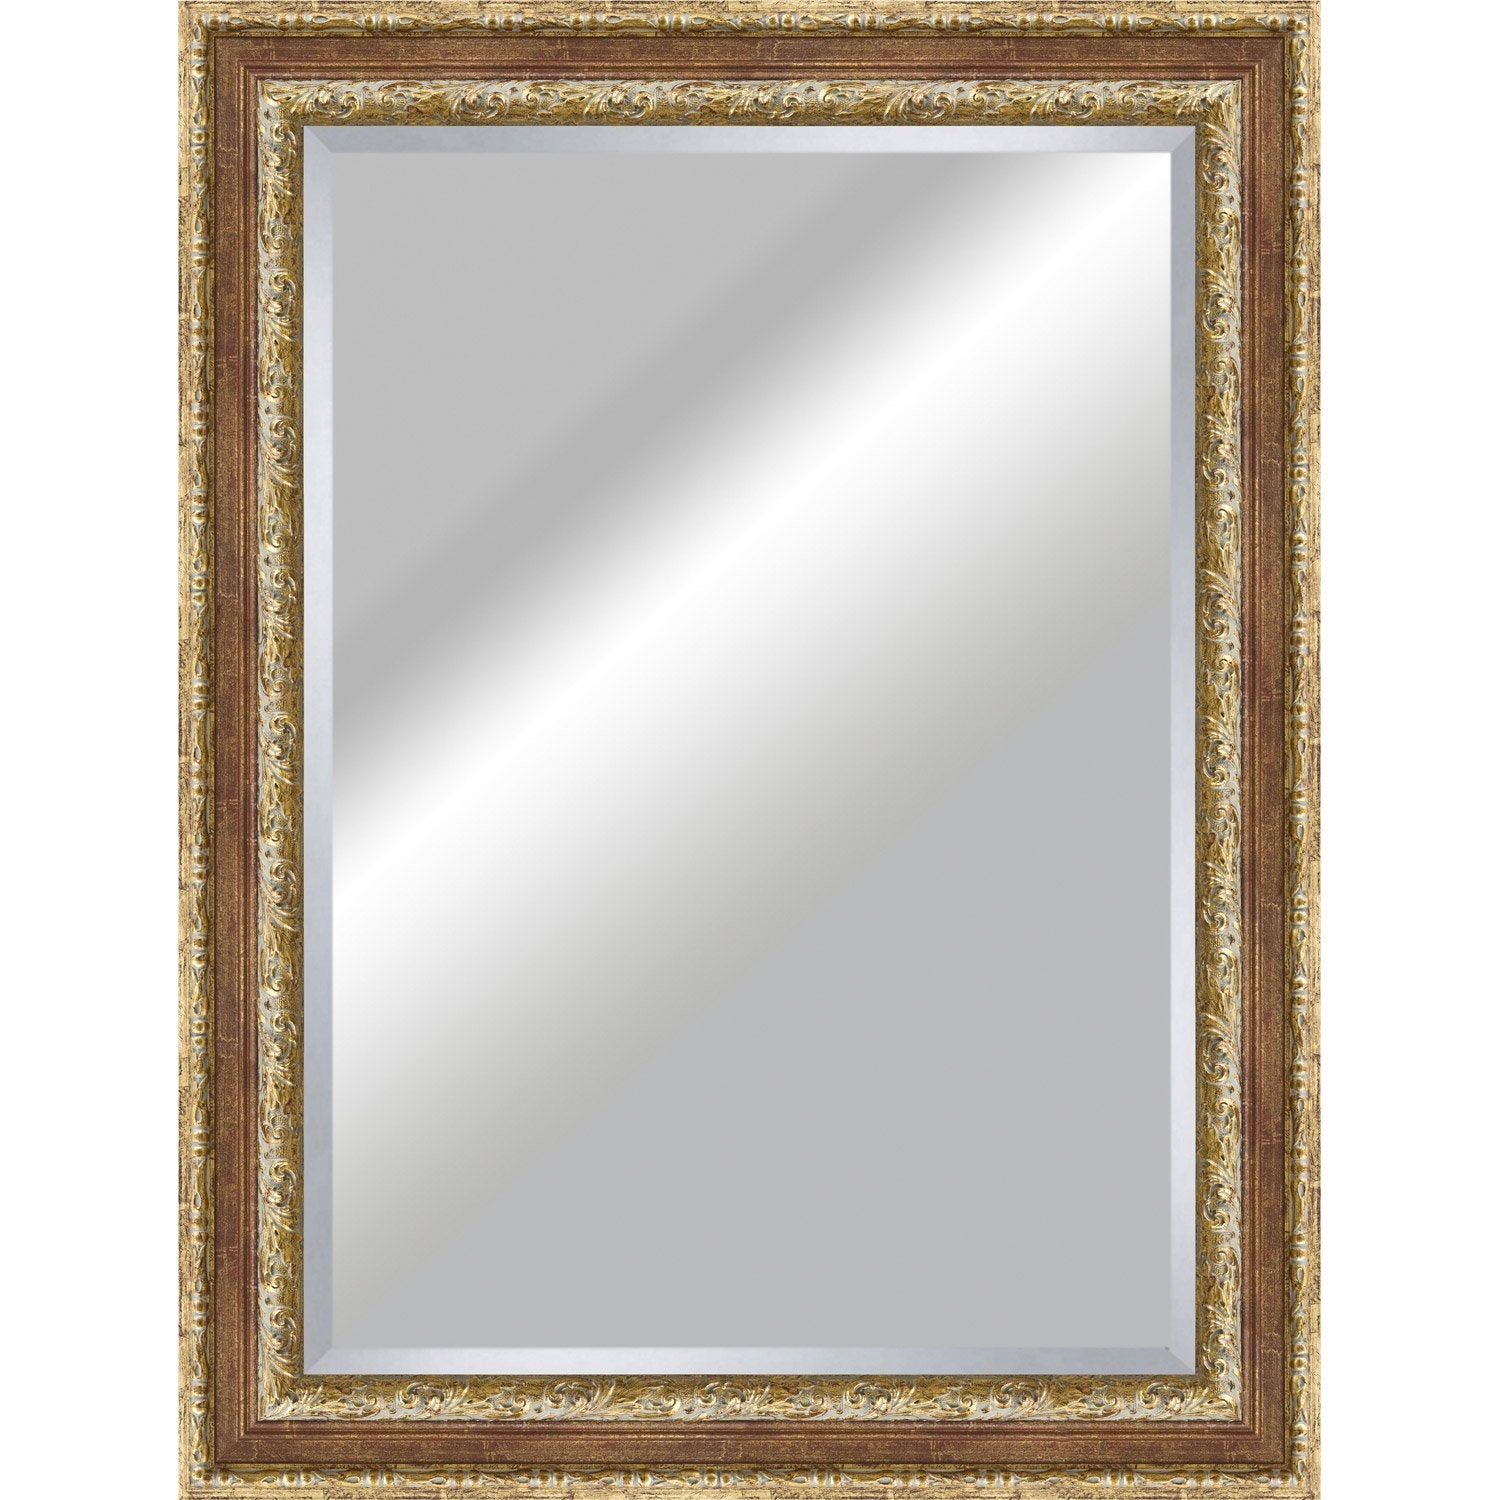 Miroir tradition rouge 50x70 cm leroy merlin for Miroir 50 x 70 leroy merlin